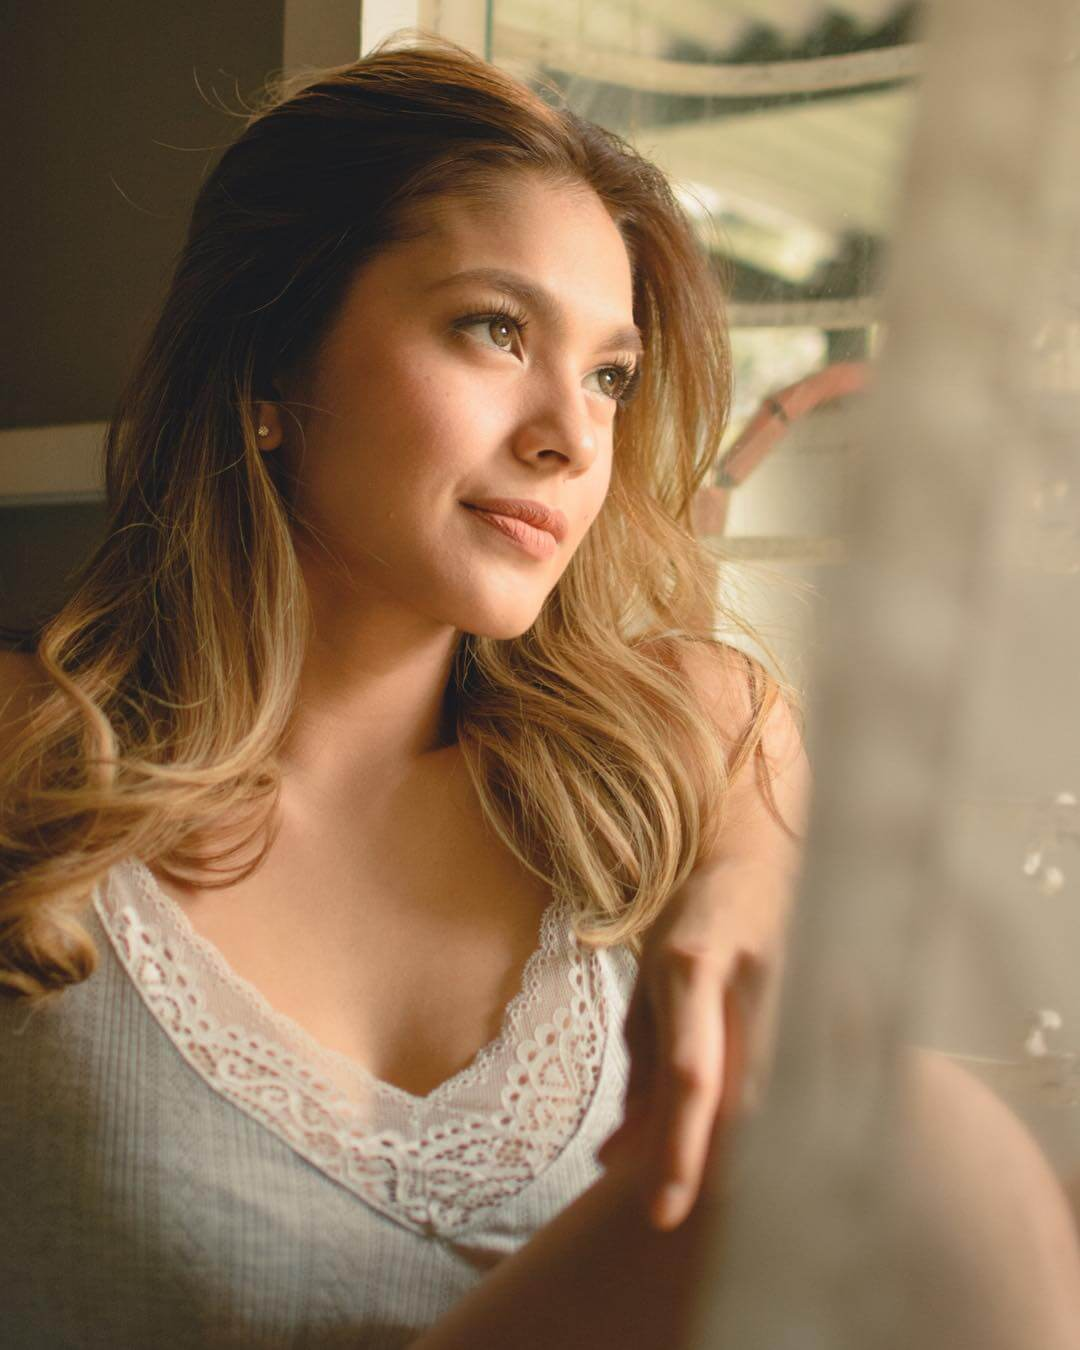 Andrea Torres sexy cleavage pic